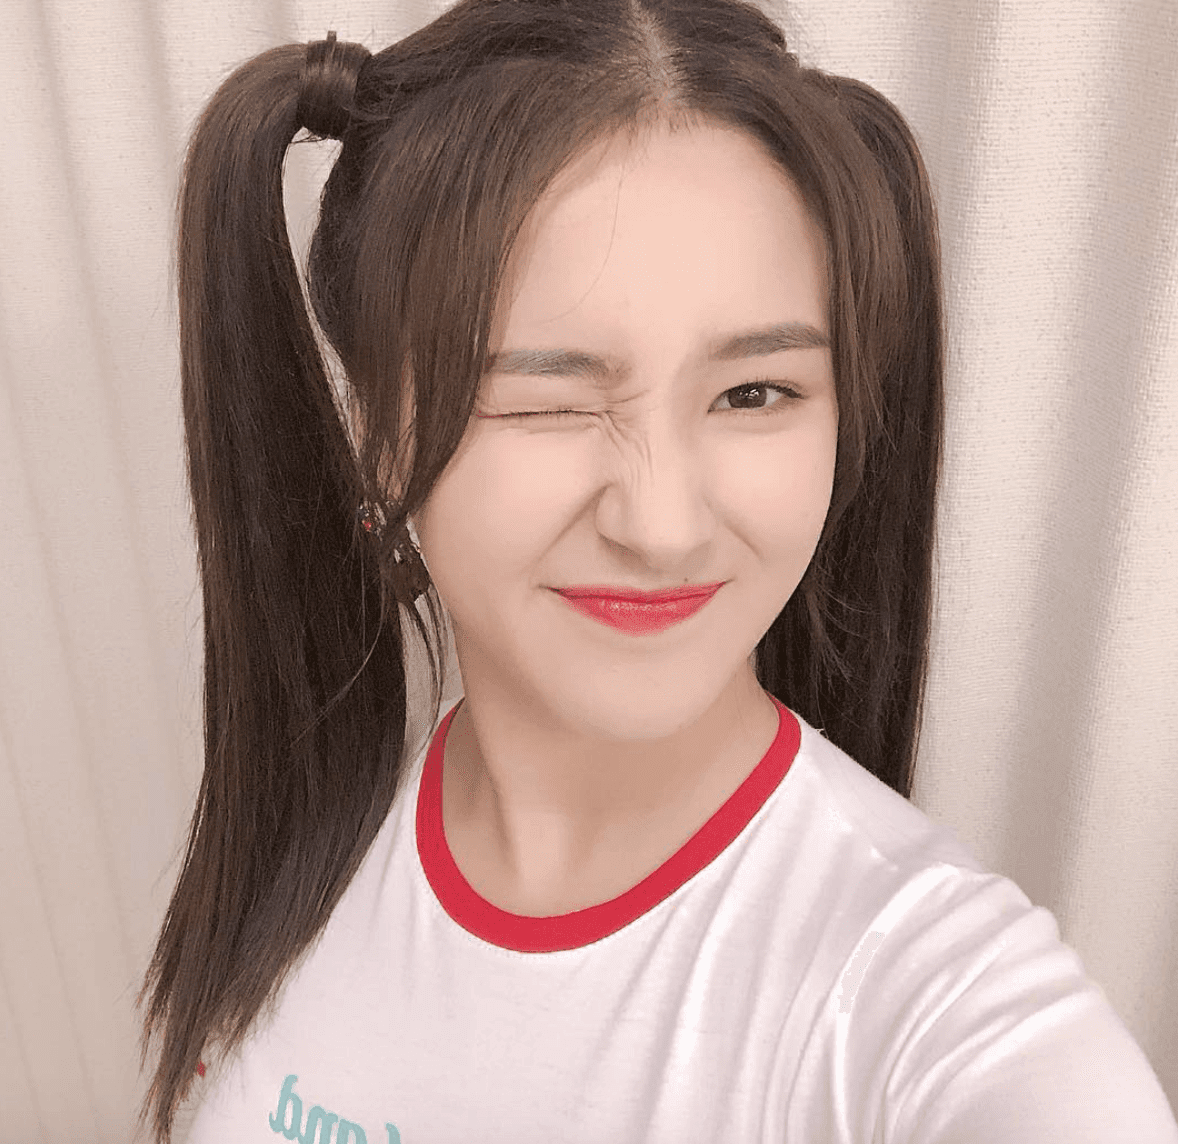 20 Beautiful Photos Of Nancy (Momoland) Taken With Her